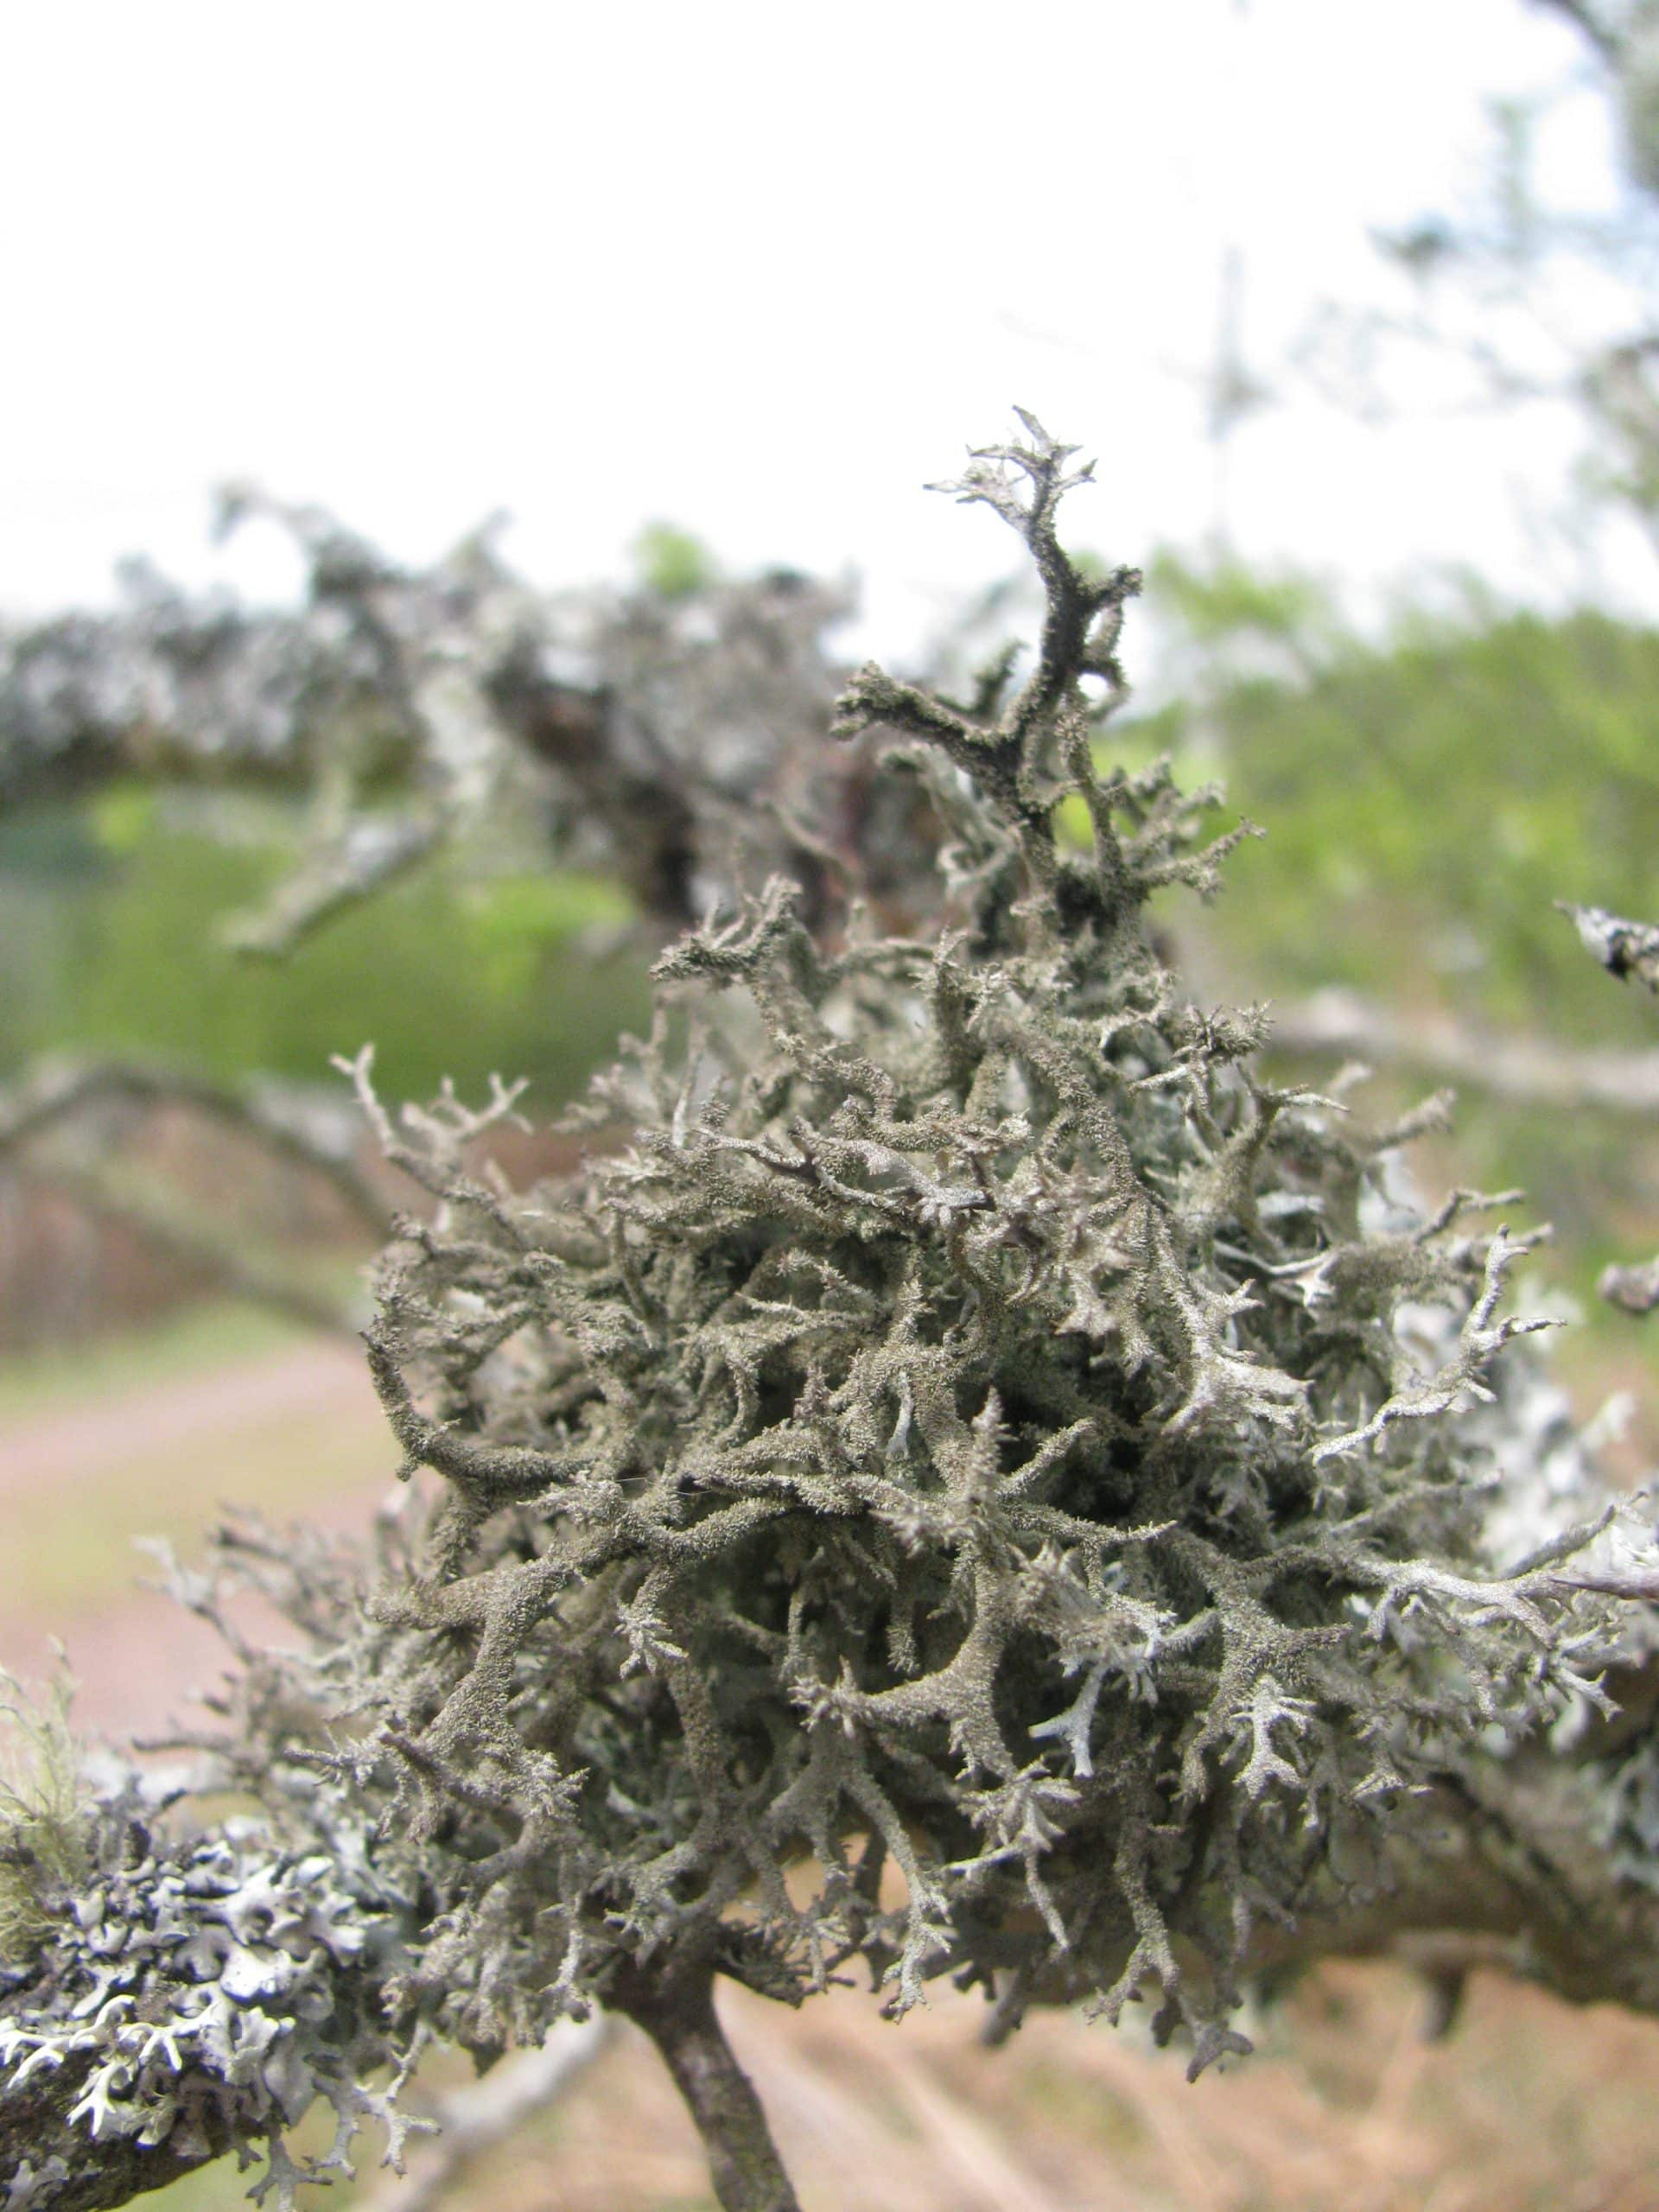 An example of an Antler Lichen foud in Northumberland National Park